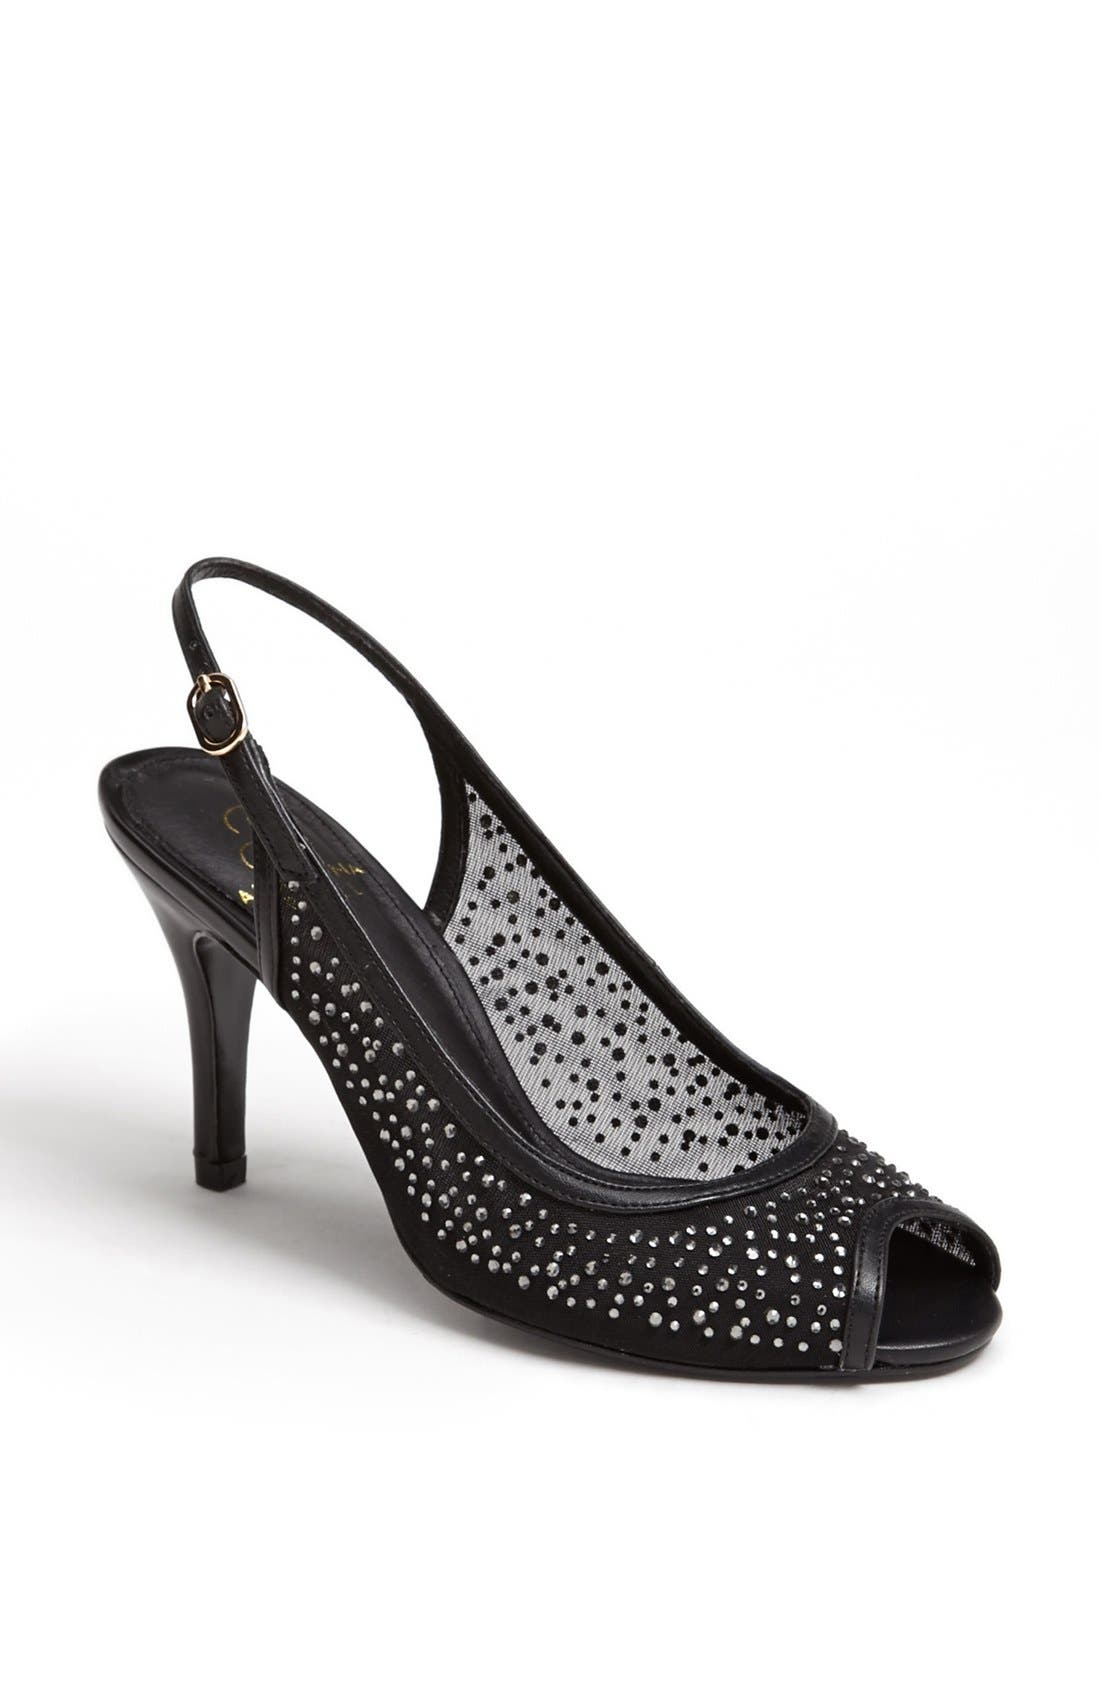 Alternate Image 1 Selected - Adrianna Papell 'Fame' Pump